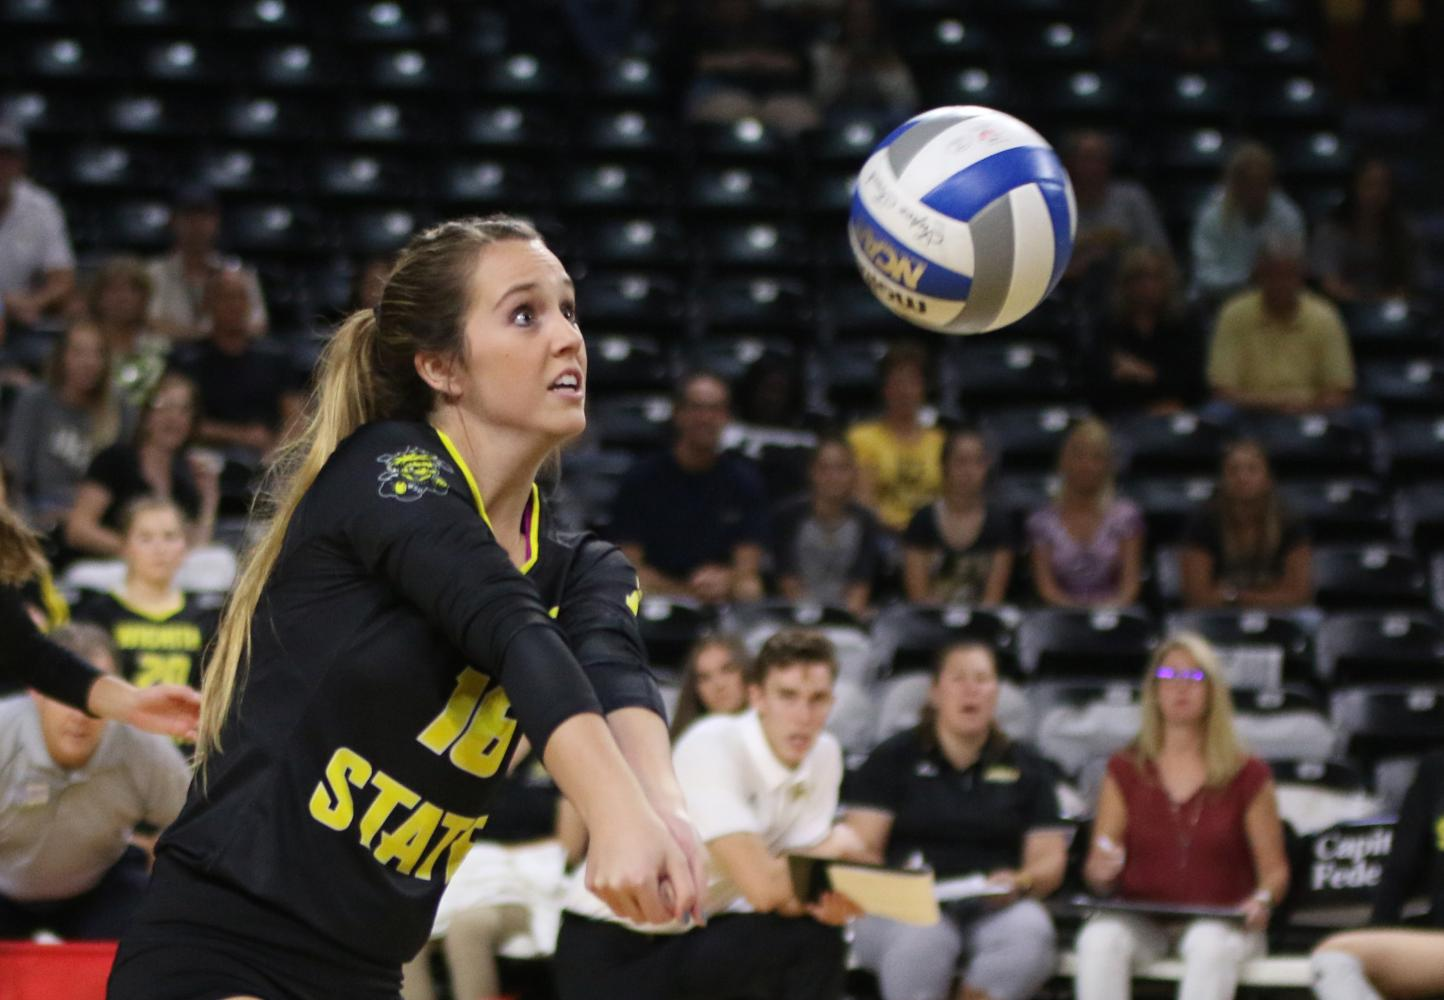 Wichita State's Kara Bown (16) digs the ball during the game against UCF last year.